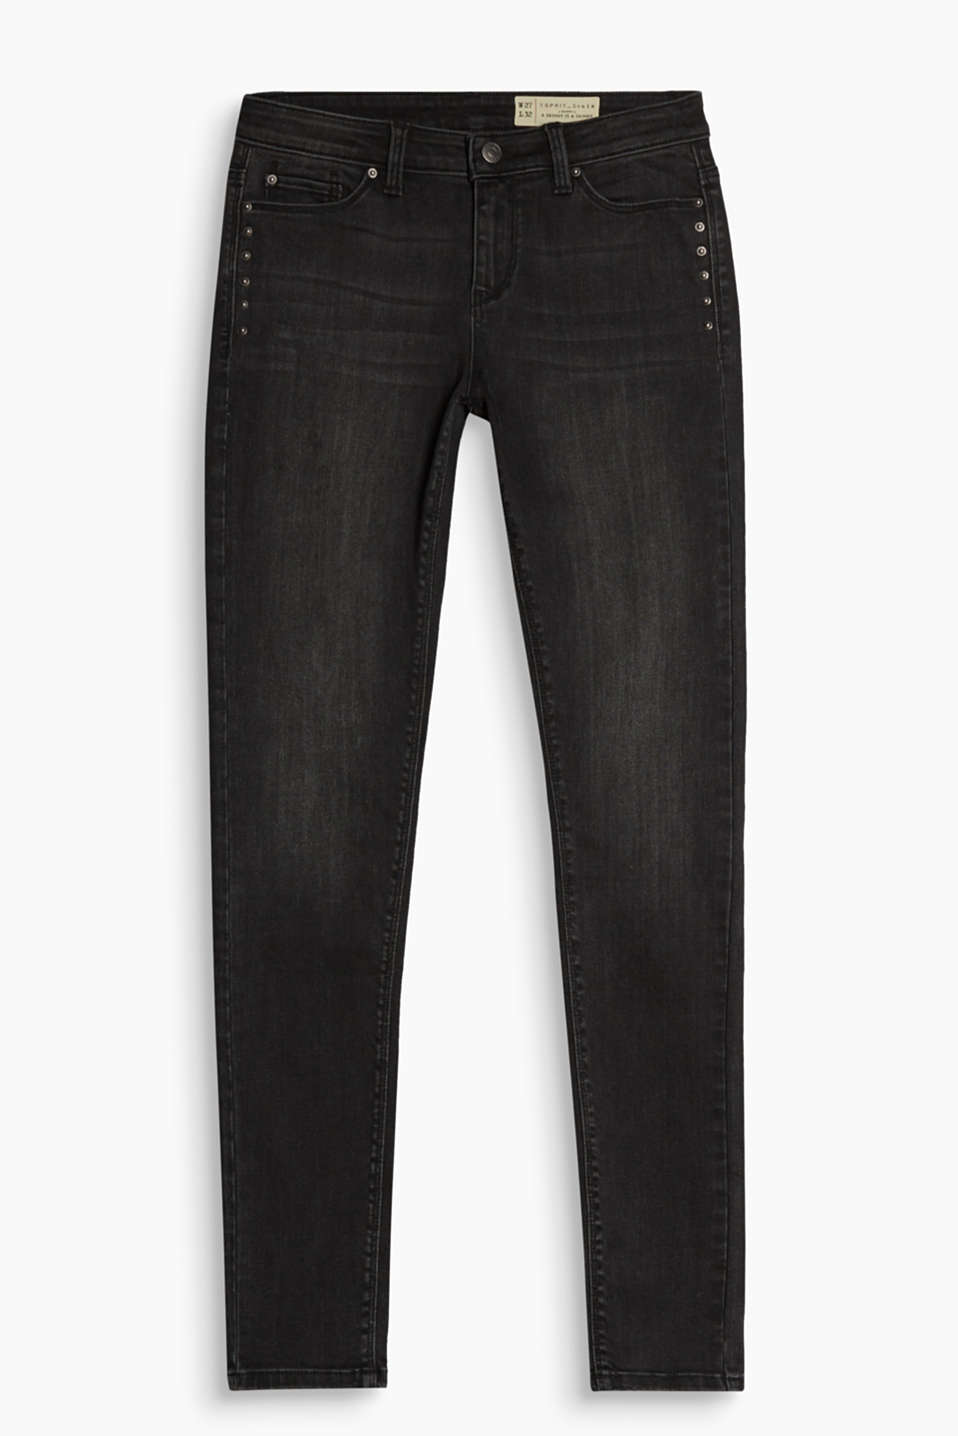 Subtle punk style: skin-tight black denim stretch jeans with stud-embellished front pockets